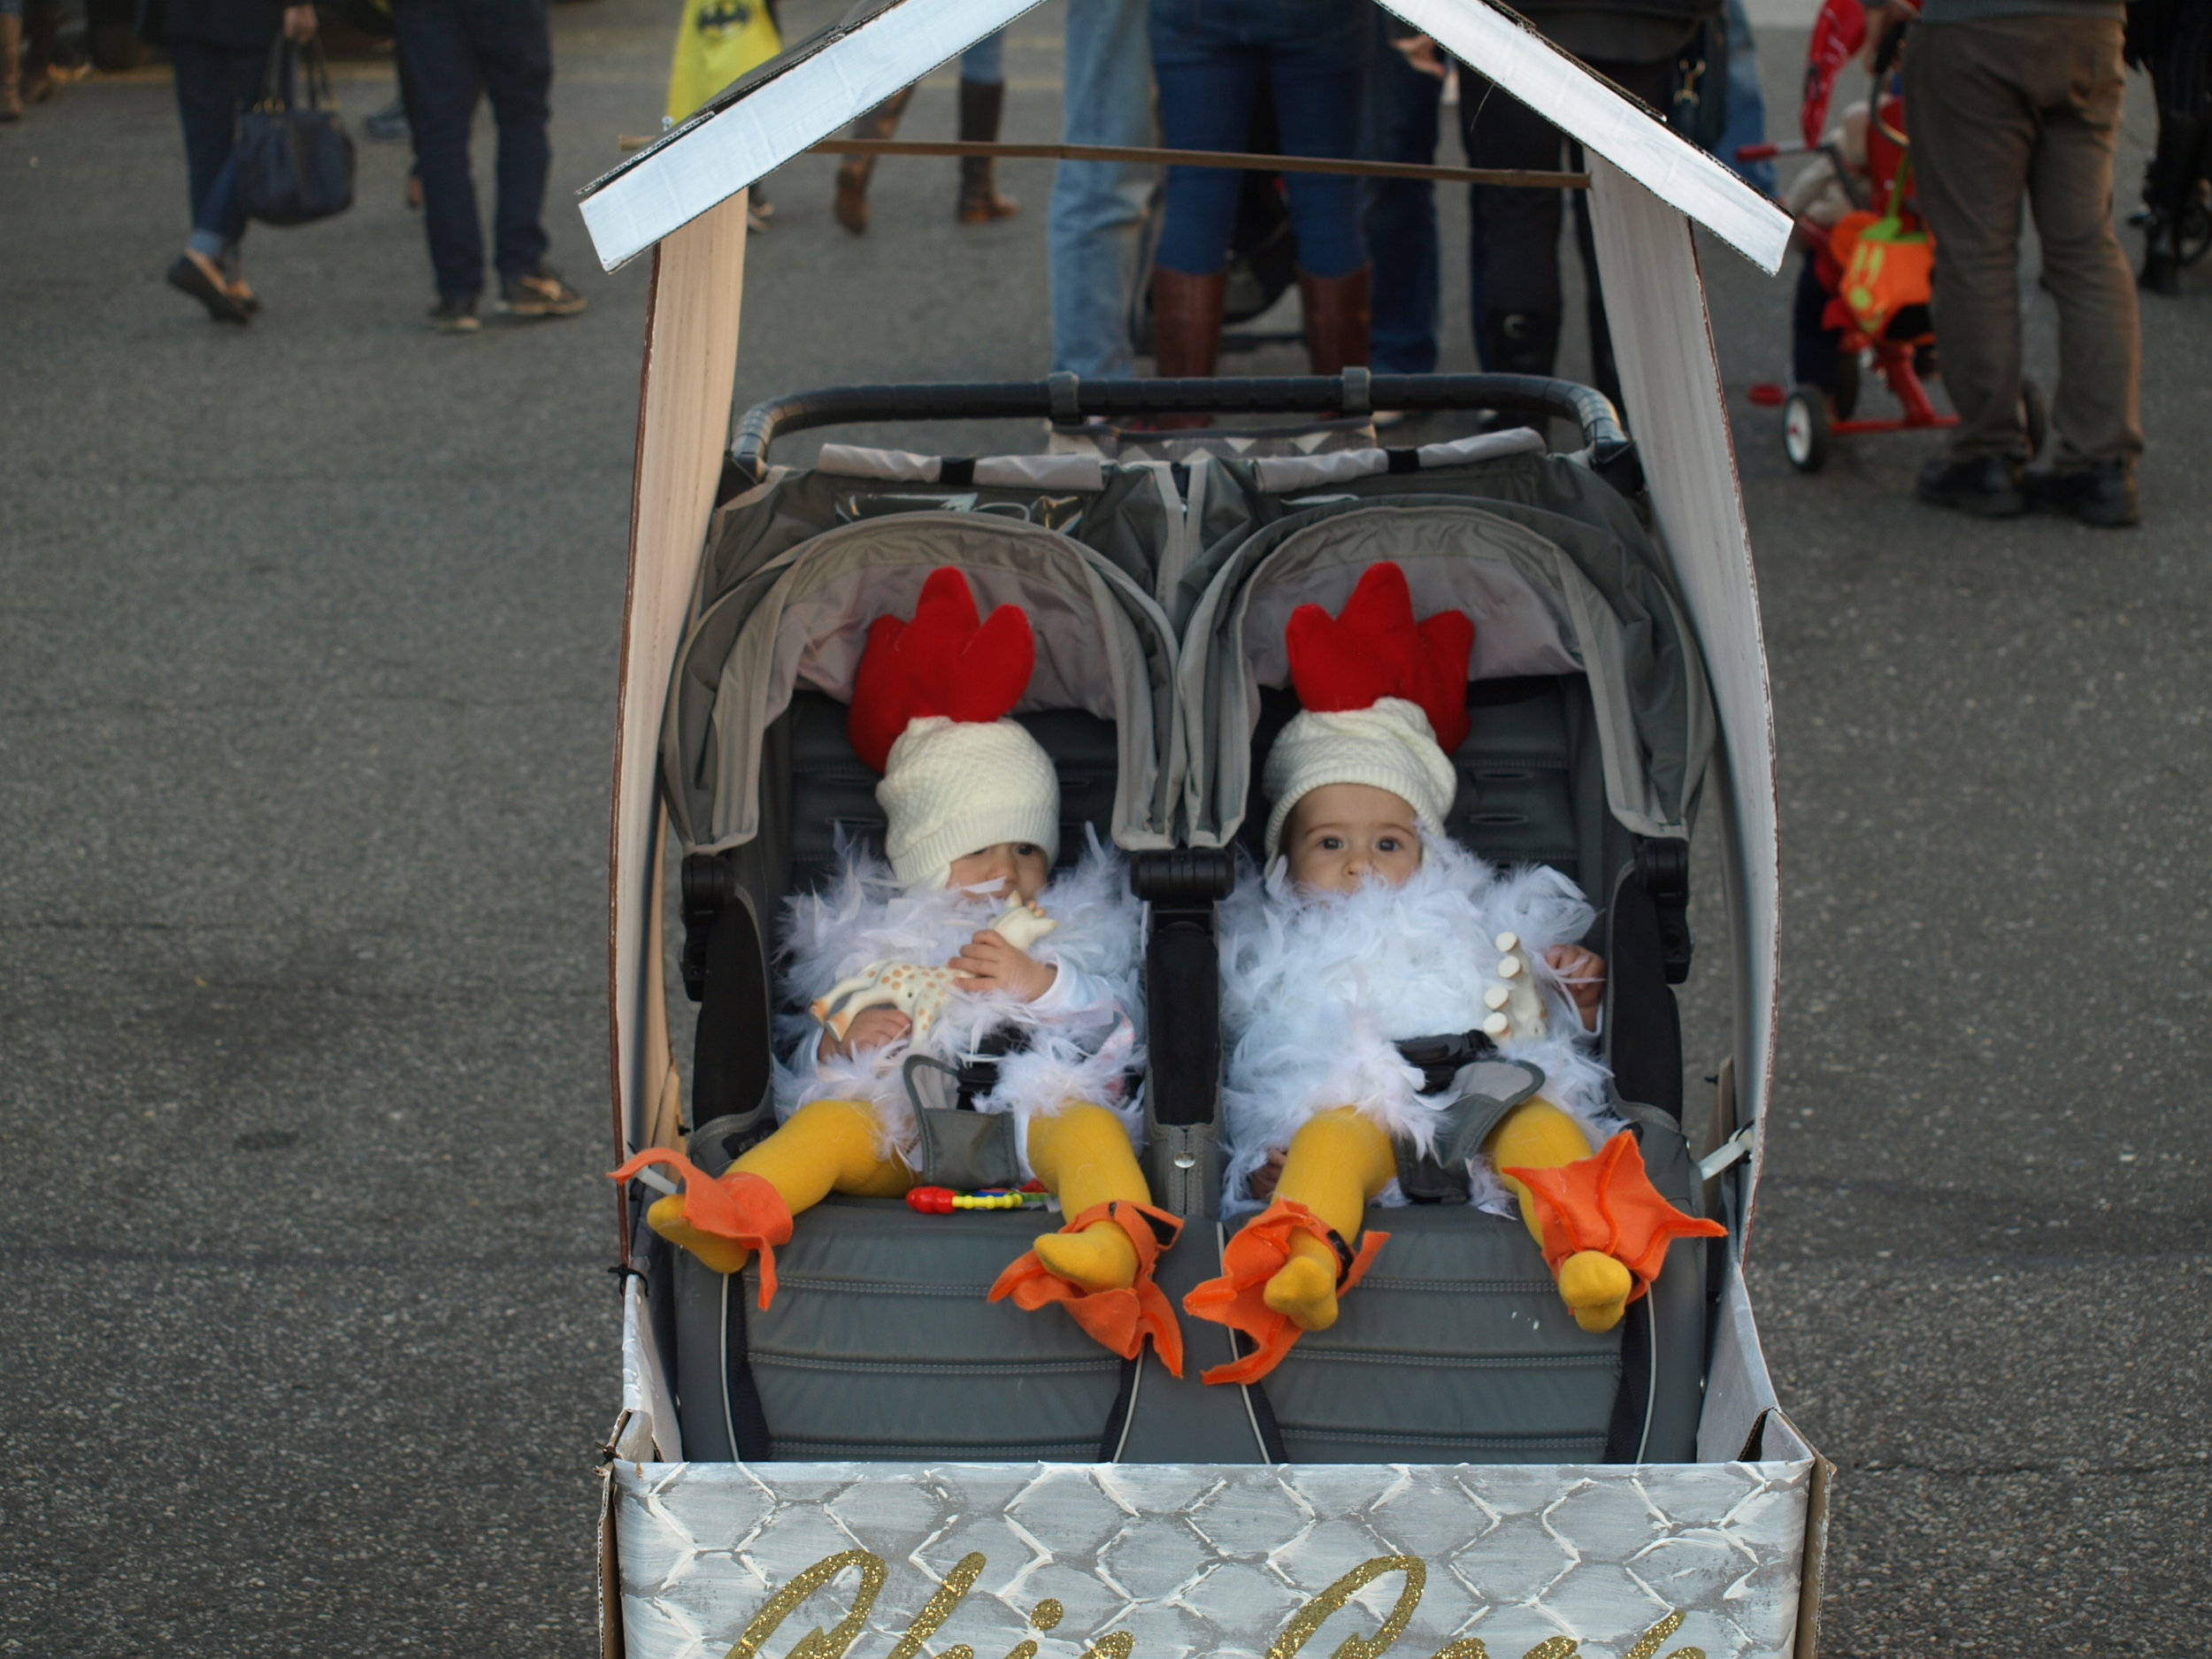 """Twin chicks braved the cold weather together in their """"chicken coup"""" stroller.  Long Islander News Photo/Connor Beach"""